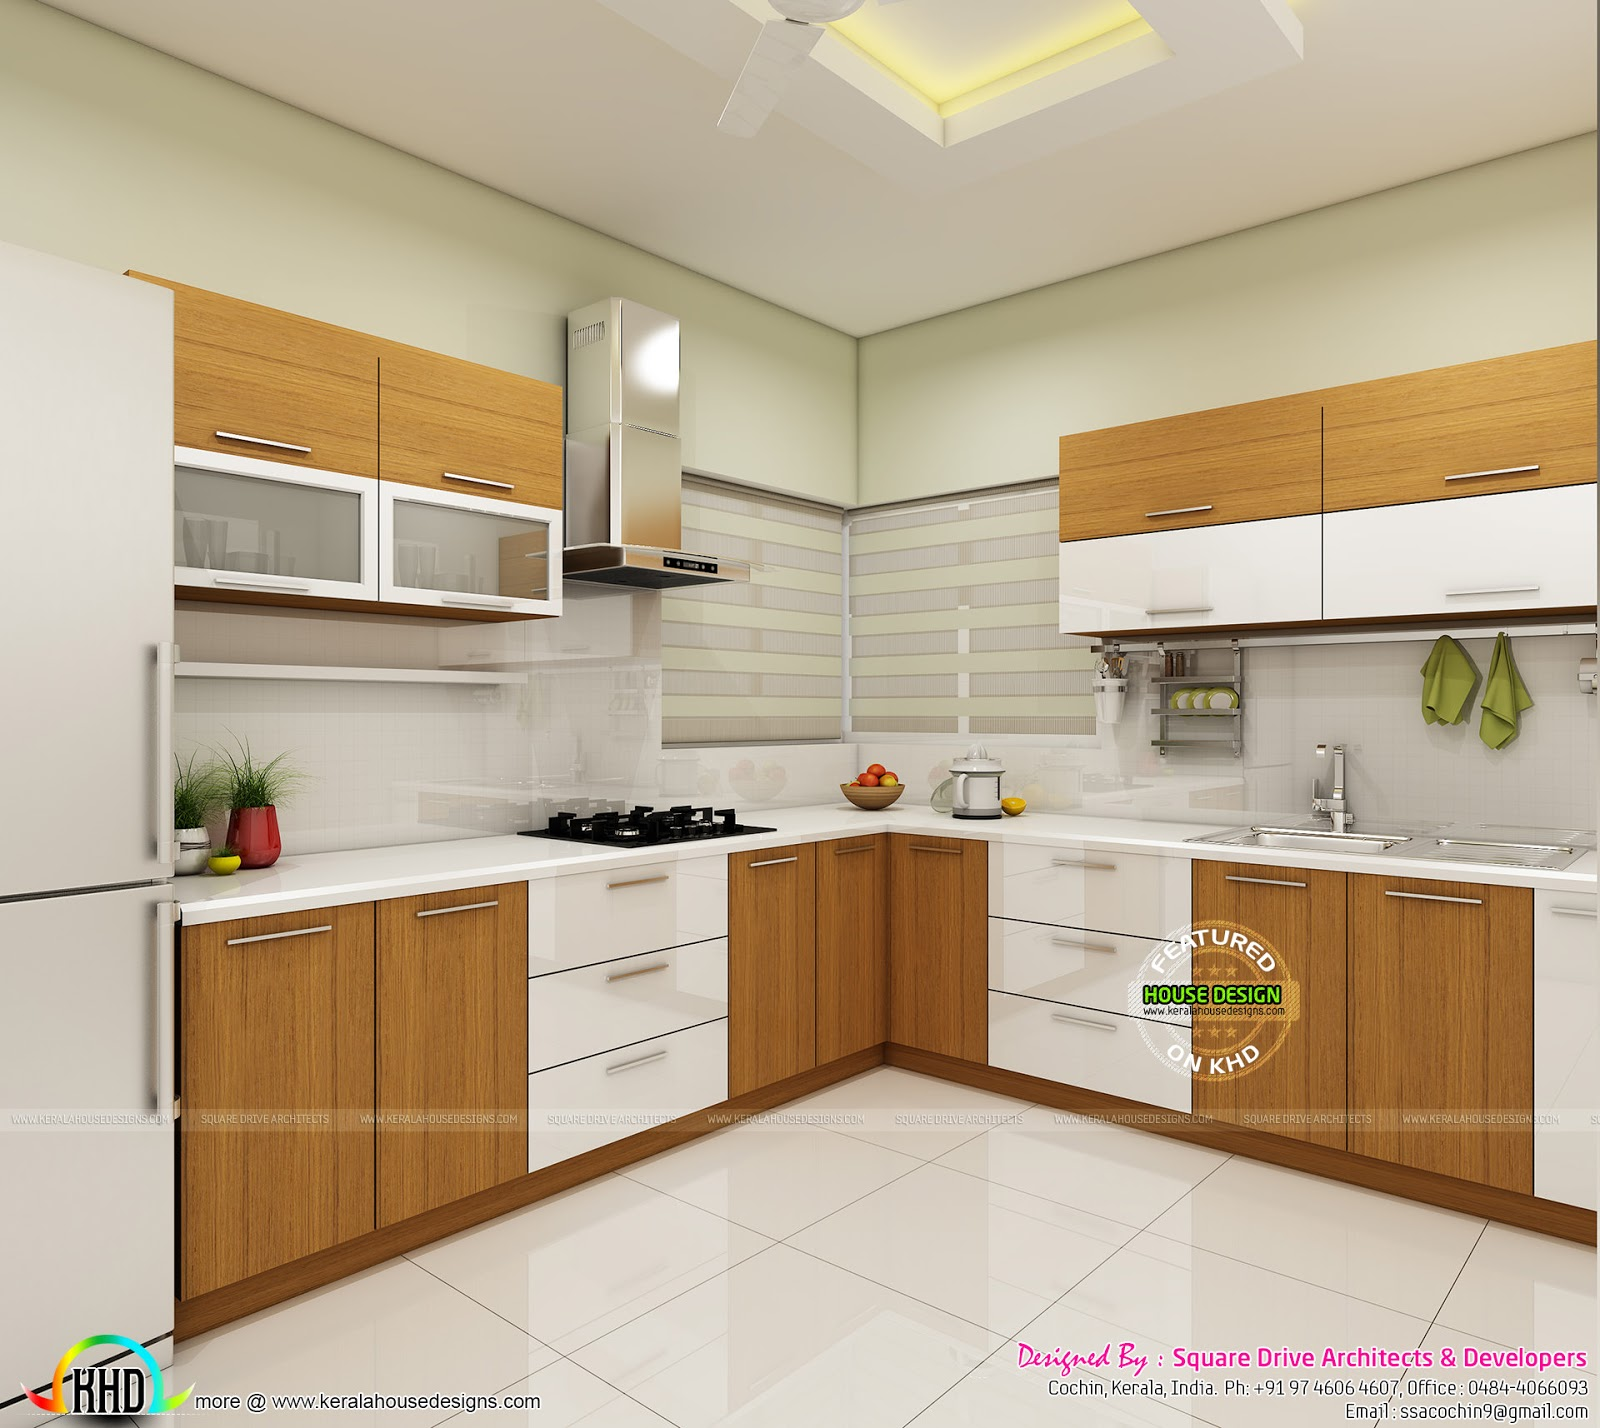 Modern home interiors of bedroom dining kitchen kerala for Modern kitchen designs in kerala